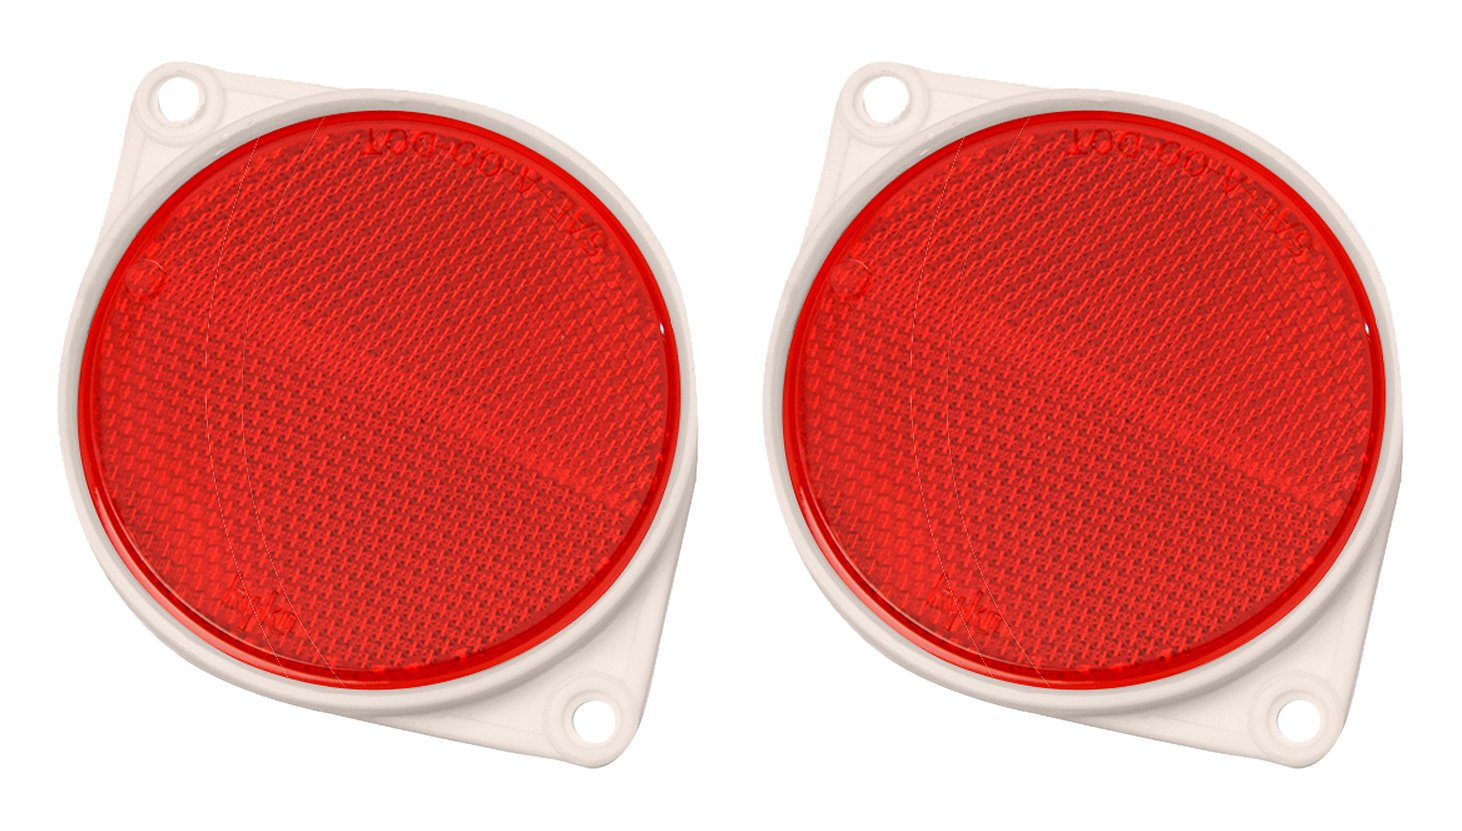 Hy-Ko Products CDRF-3R Nail On Reflector 3'' Diameter Red, 1 Piece by Hy-Ko Products (Image #1)